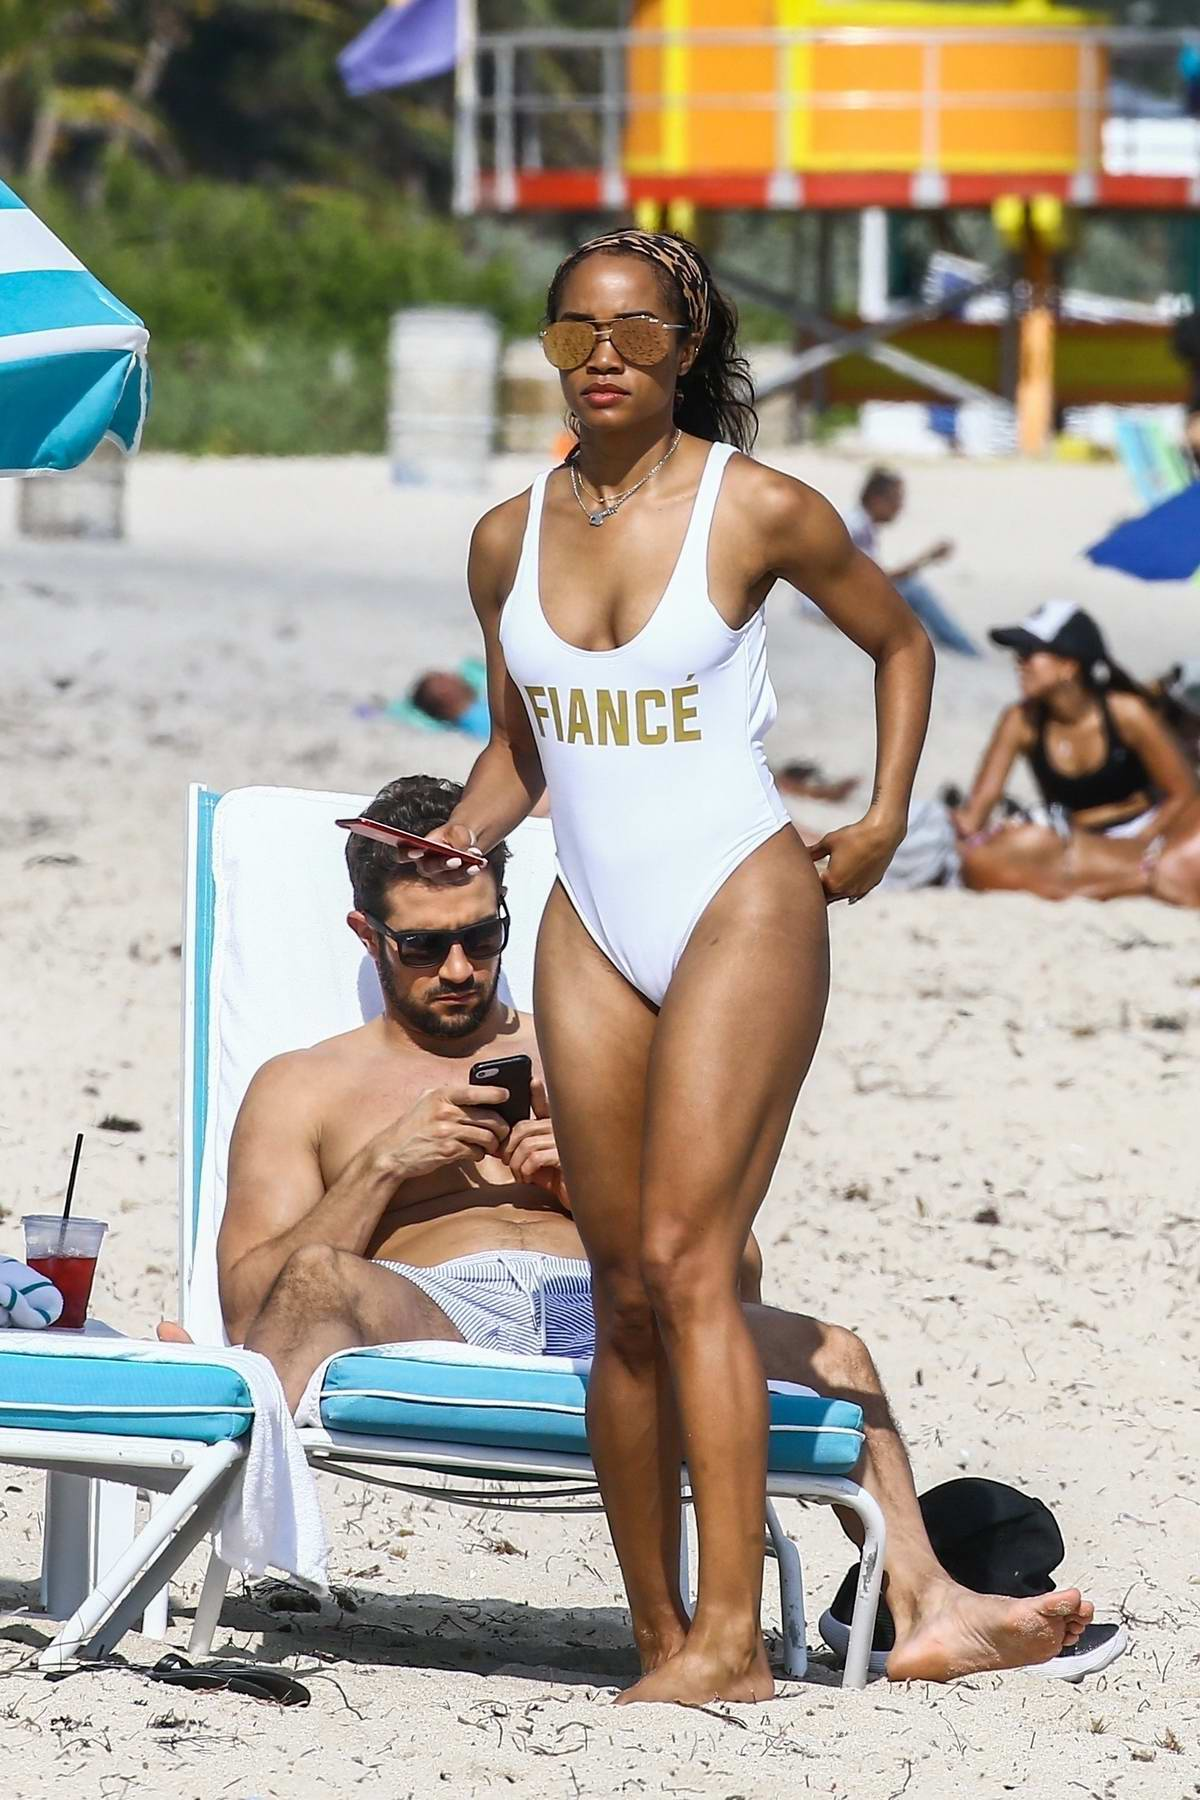 Rachel Lindsay wears a white swimsuit as she hits the beach with finance Brian Abosolo in Miami, Florida